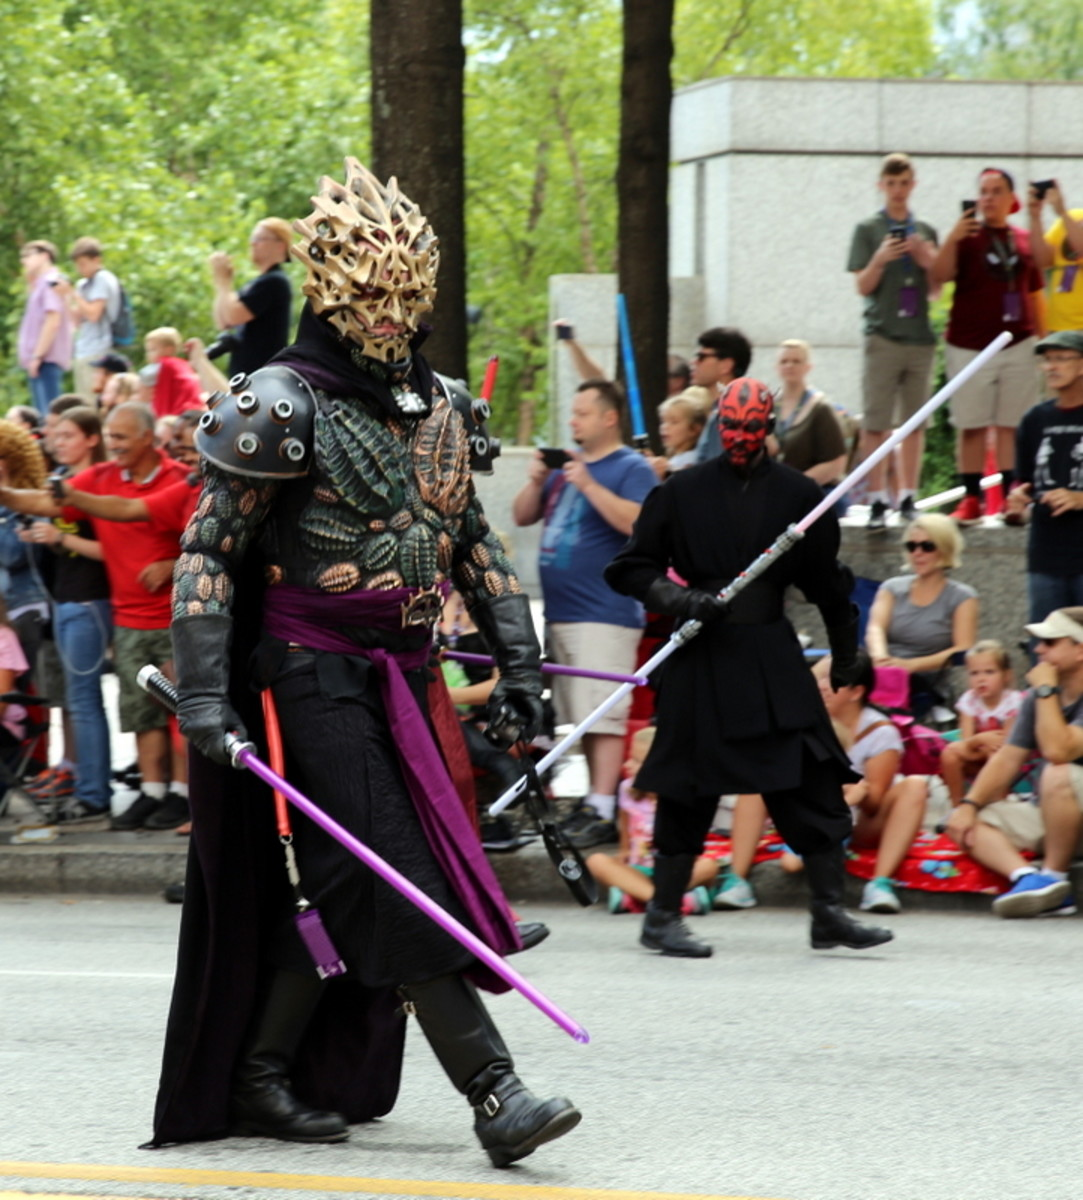 A cosplayer dressed up as Darth Bane.